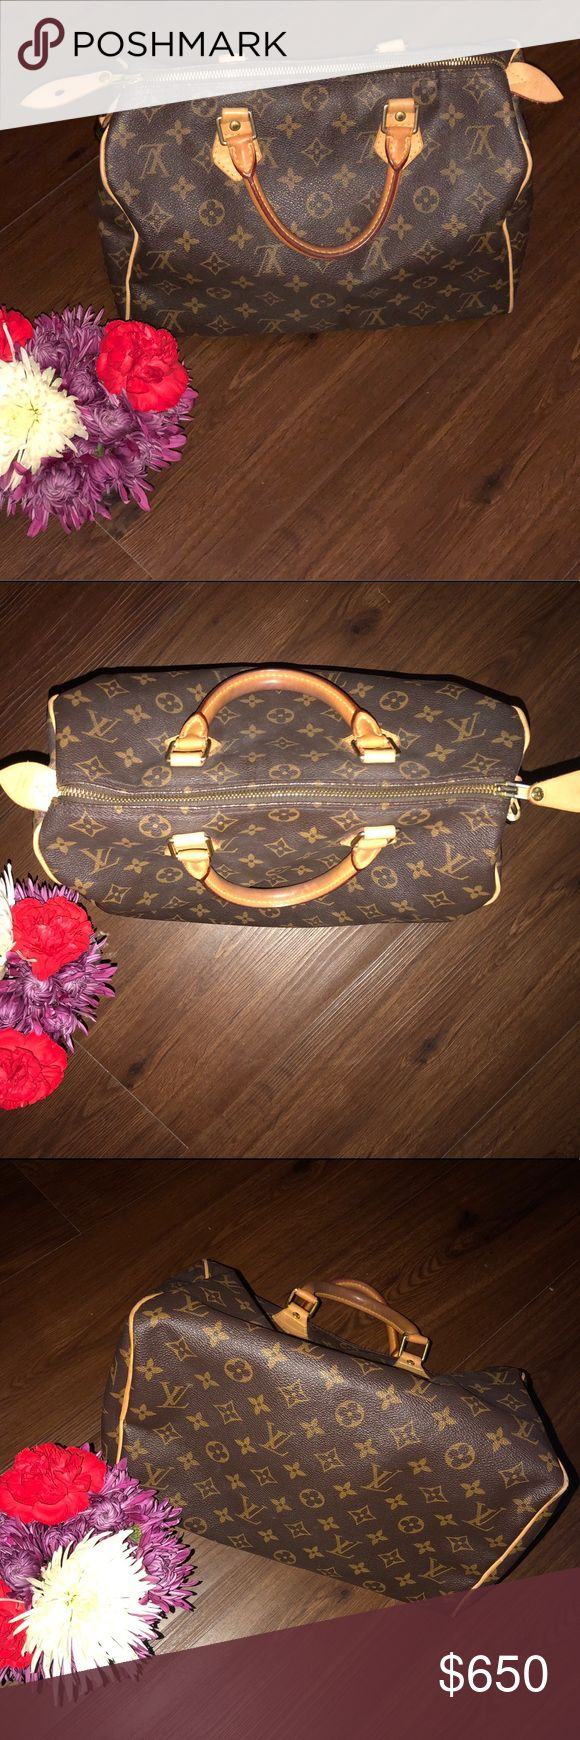 AUTHENTIC Louis Vuitton Purse 👜 ✨ Almost 50% off the original price! It's in excellent condition & yes, it is a real Louis Vuitton 😍✨ The only imperfections are tiny marks that are inside the actual bag but they are very minimal and not really that noticeable. It comes with a Louis Vuitton lock & key. I'm adding a beautiful mystery item to whoever purchases this gorgeous LV classic  💕☺️ If you have any questions please don't hesitate to ask! & I'm always willing to negotiate to find the…